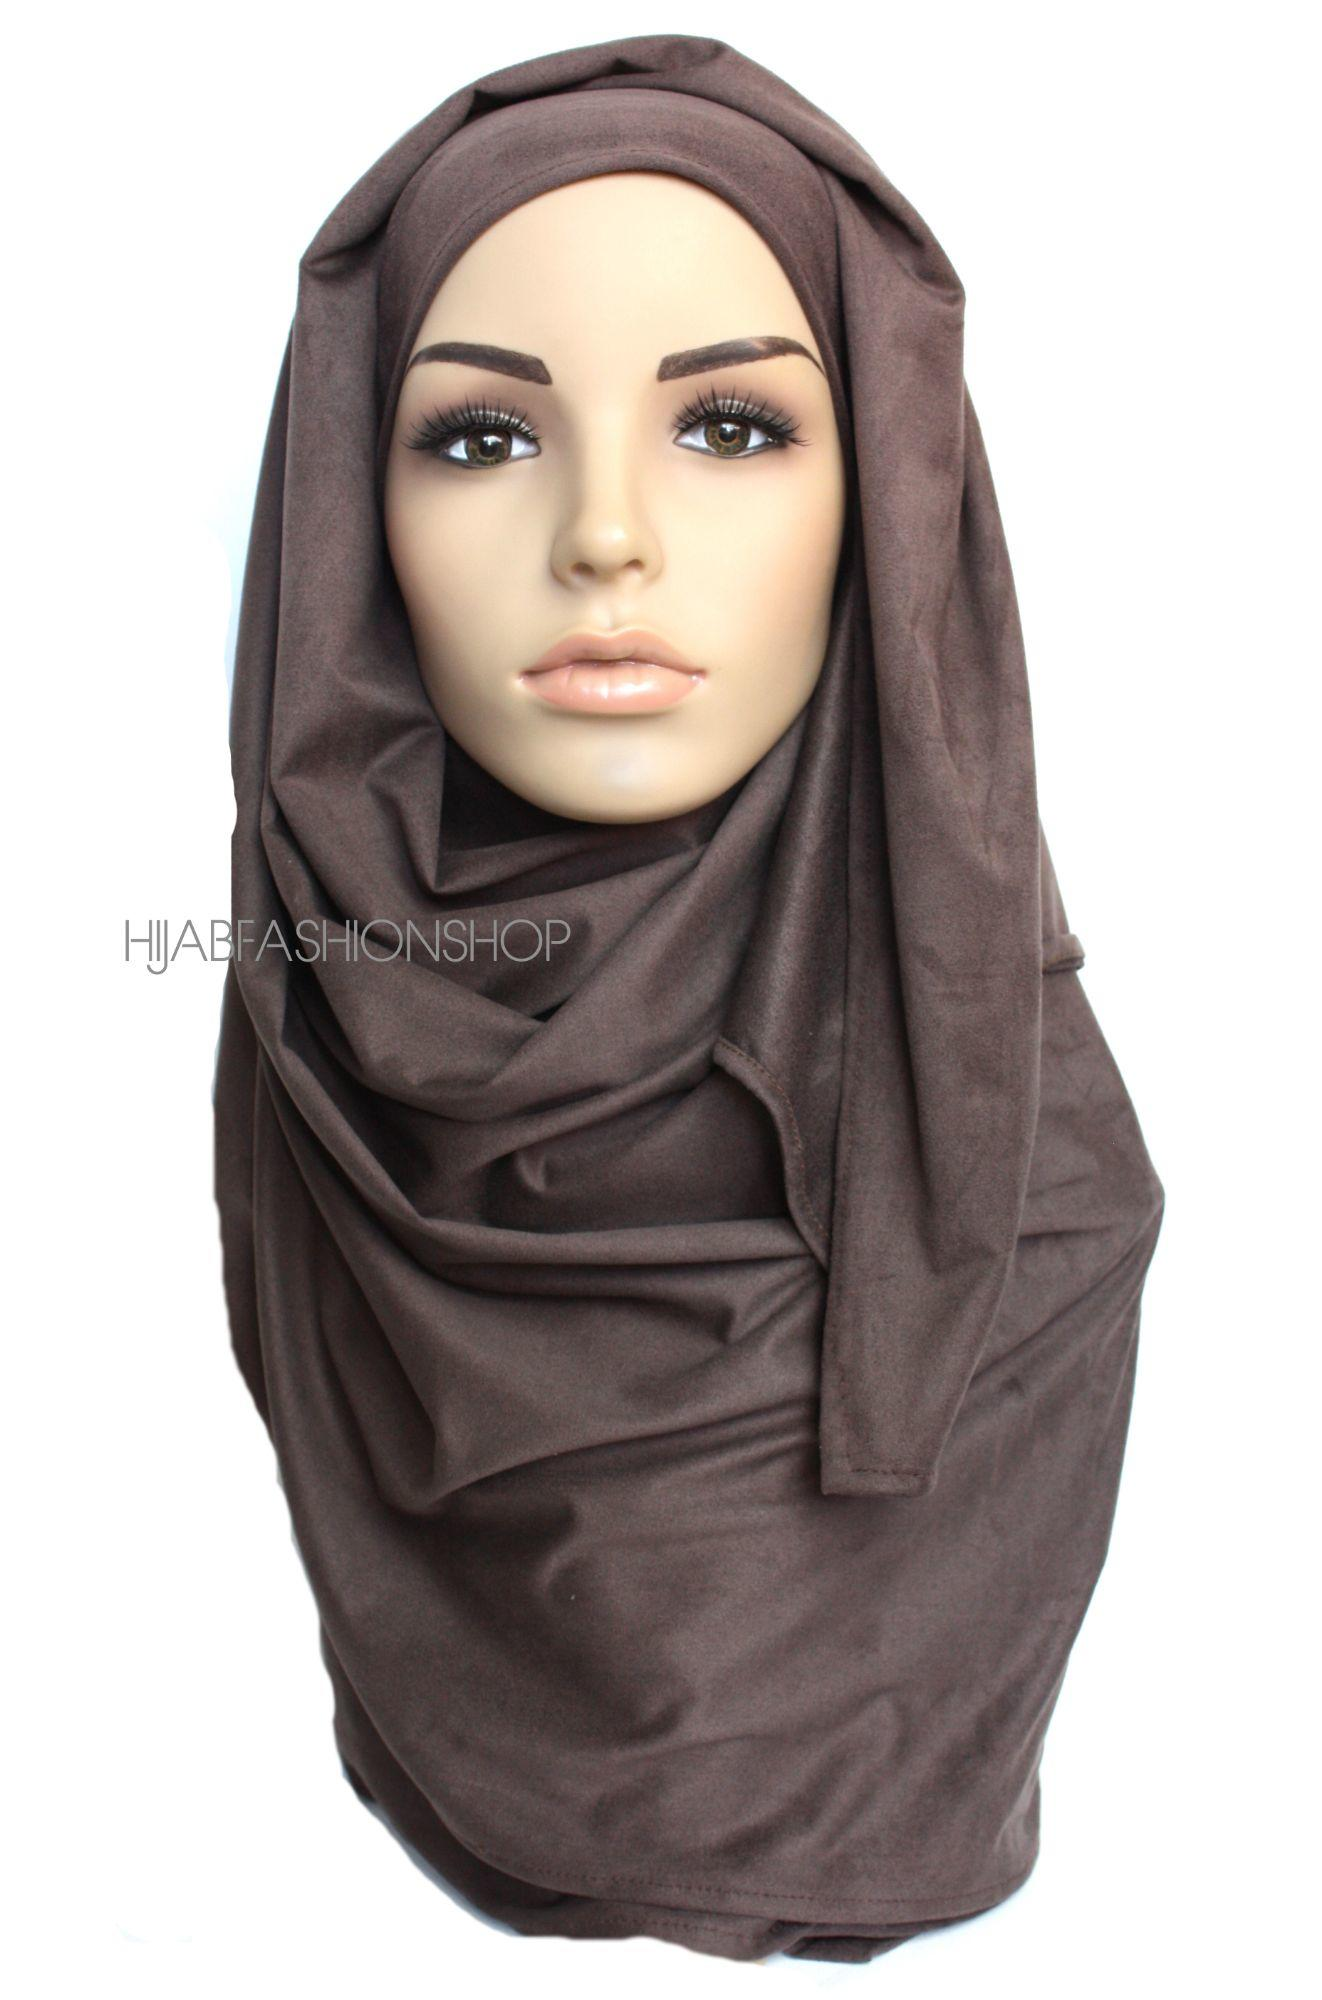 chocolate brown suede hijab